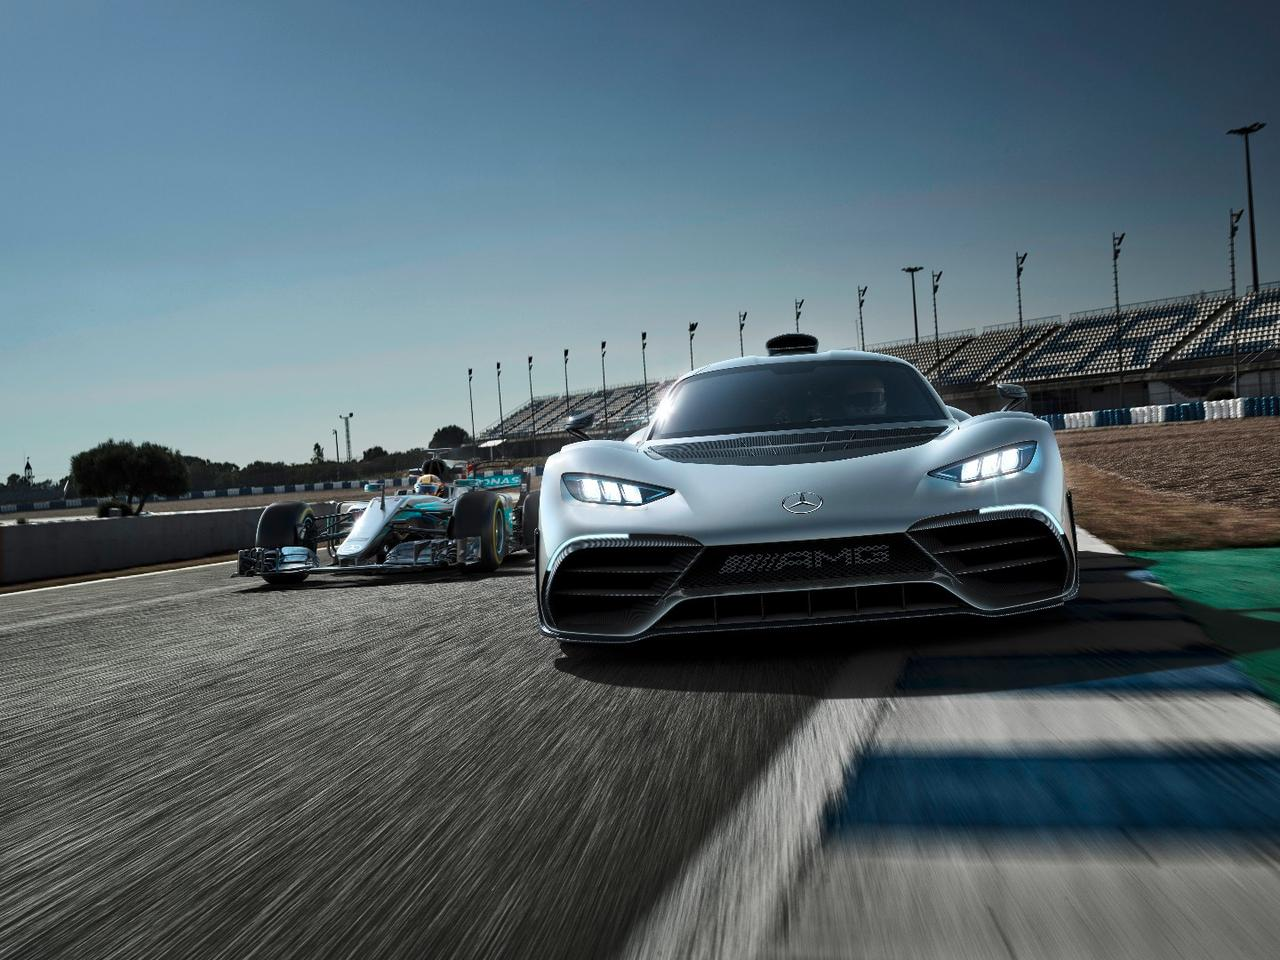 The Mercedes-AMG Project ONE show car for the 2017 Frankfurt Motor Show